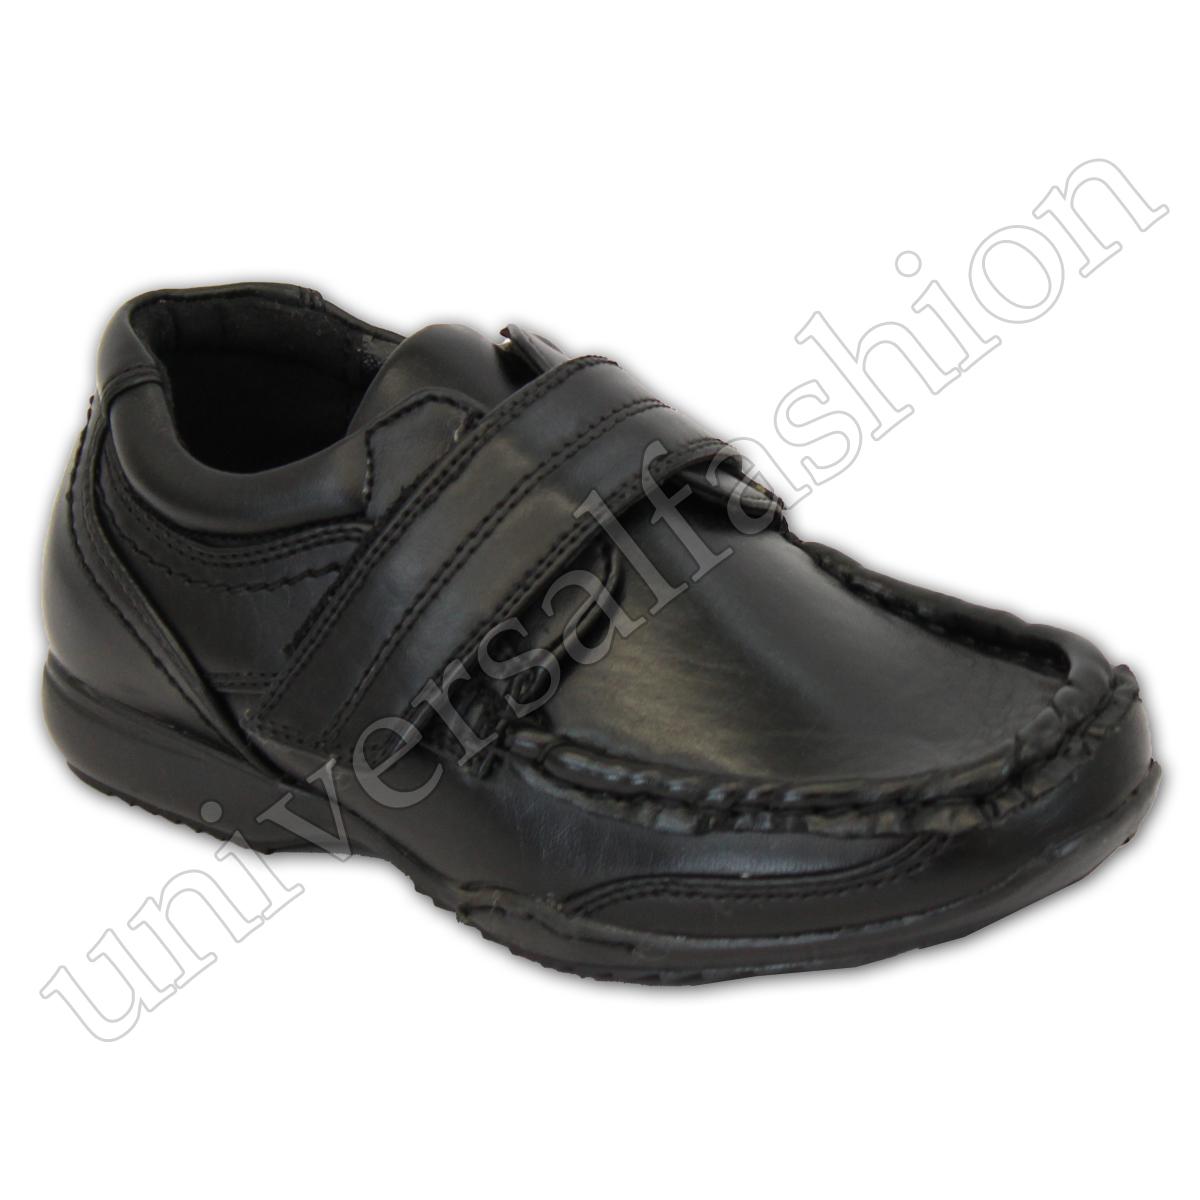 Find new look shoes from a vast selection of